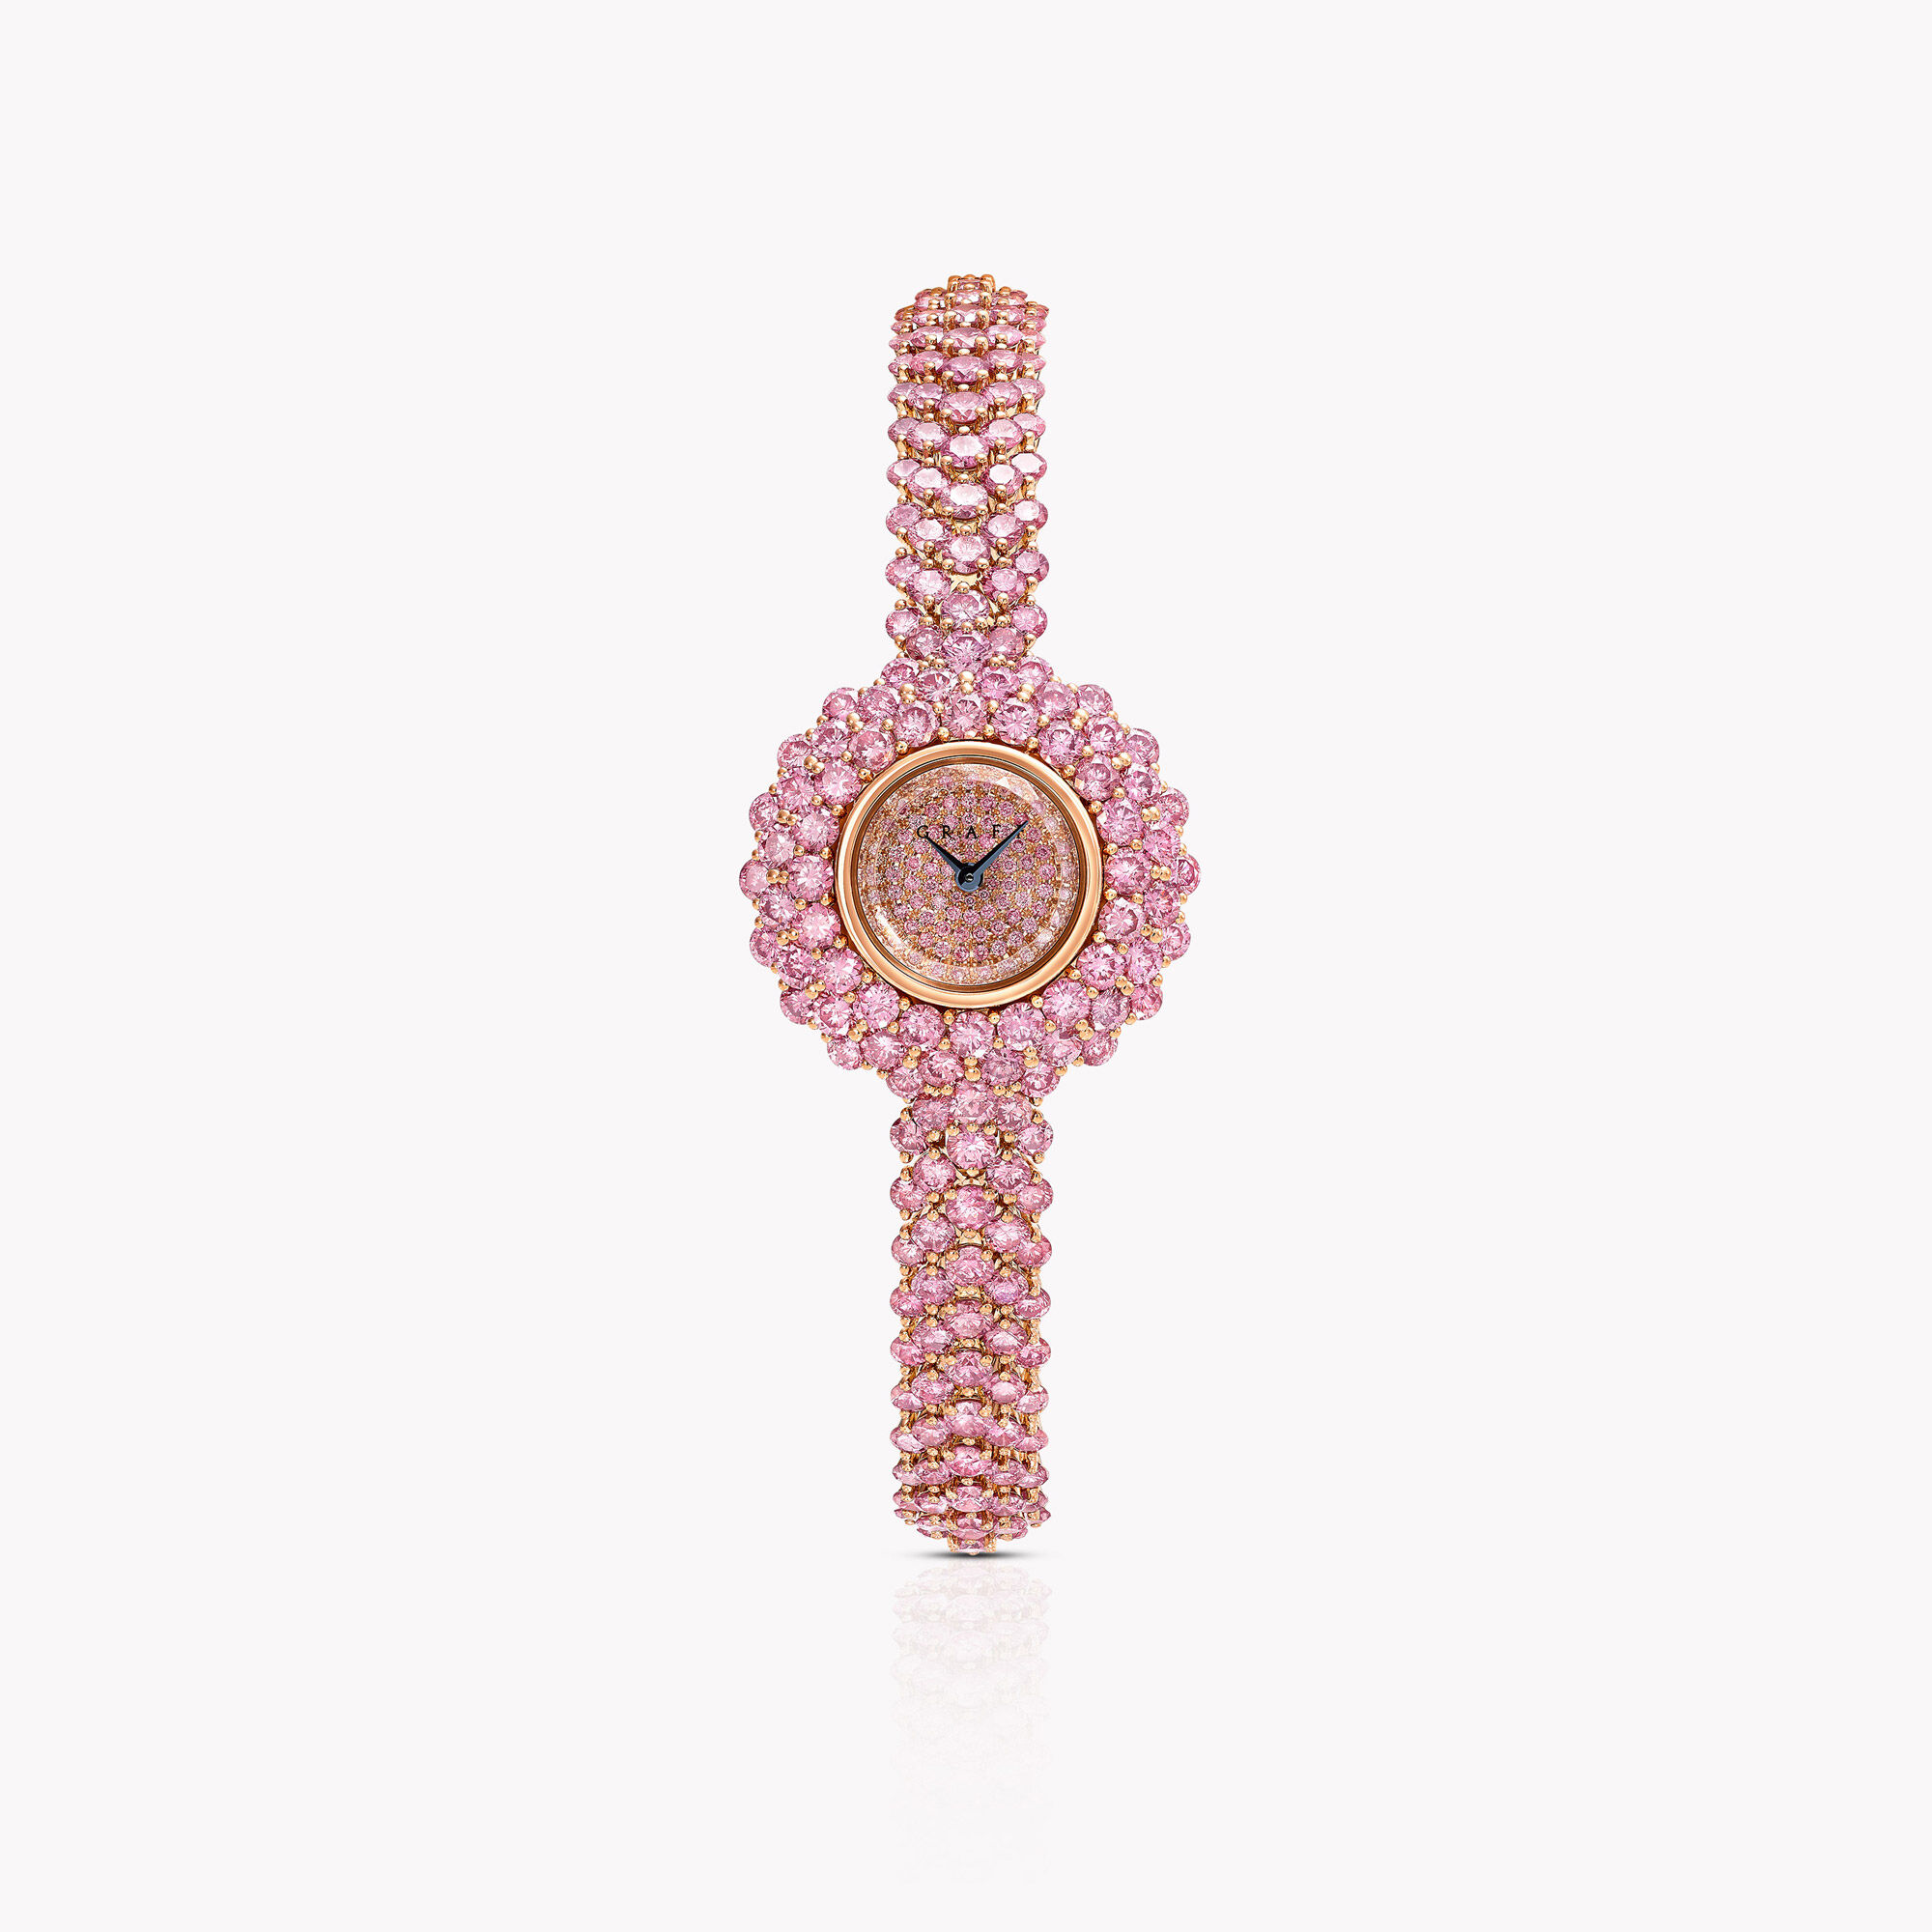 Oval Diamond Watch (24.49 cts) from the Graff unique timepieces collection